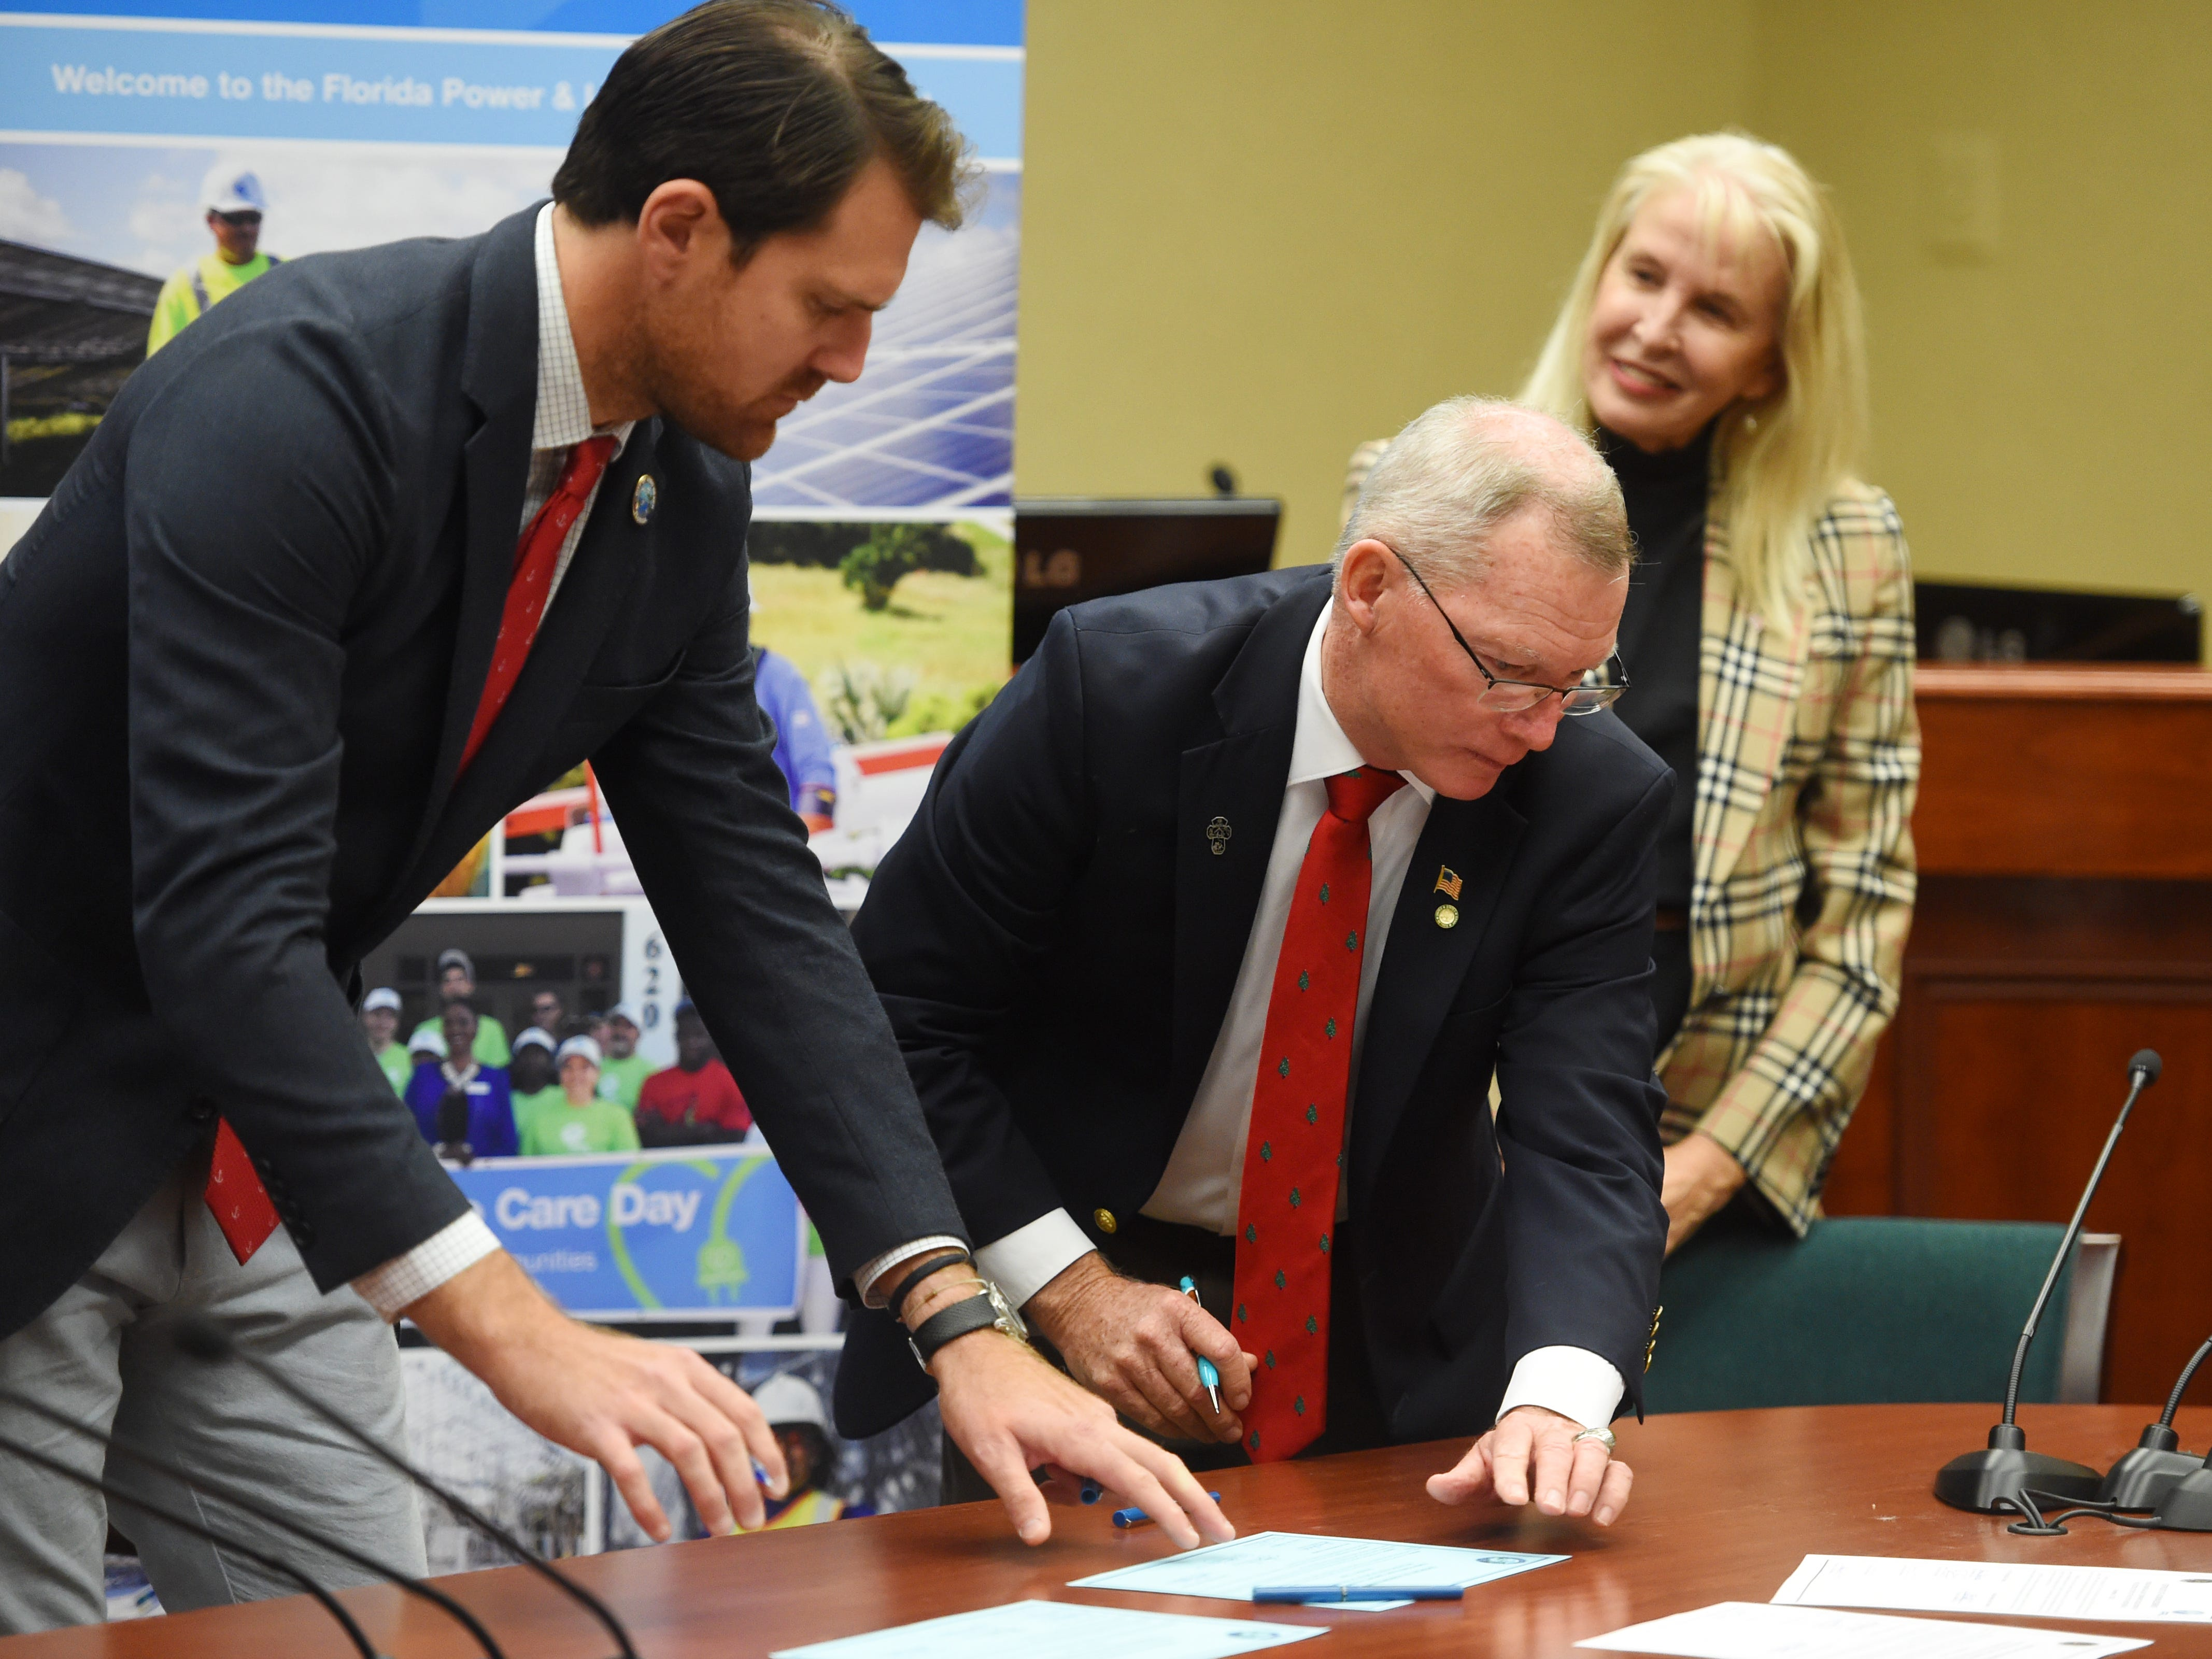 The Vero Beach City Council held a public ceremony for the signing of the final papers for the sale of the Vero Beach electric system to Florida Power & Light on Monday, Dec. 17, 2018 at City Hall in Vero Beach.